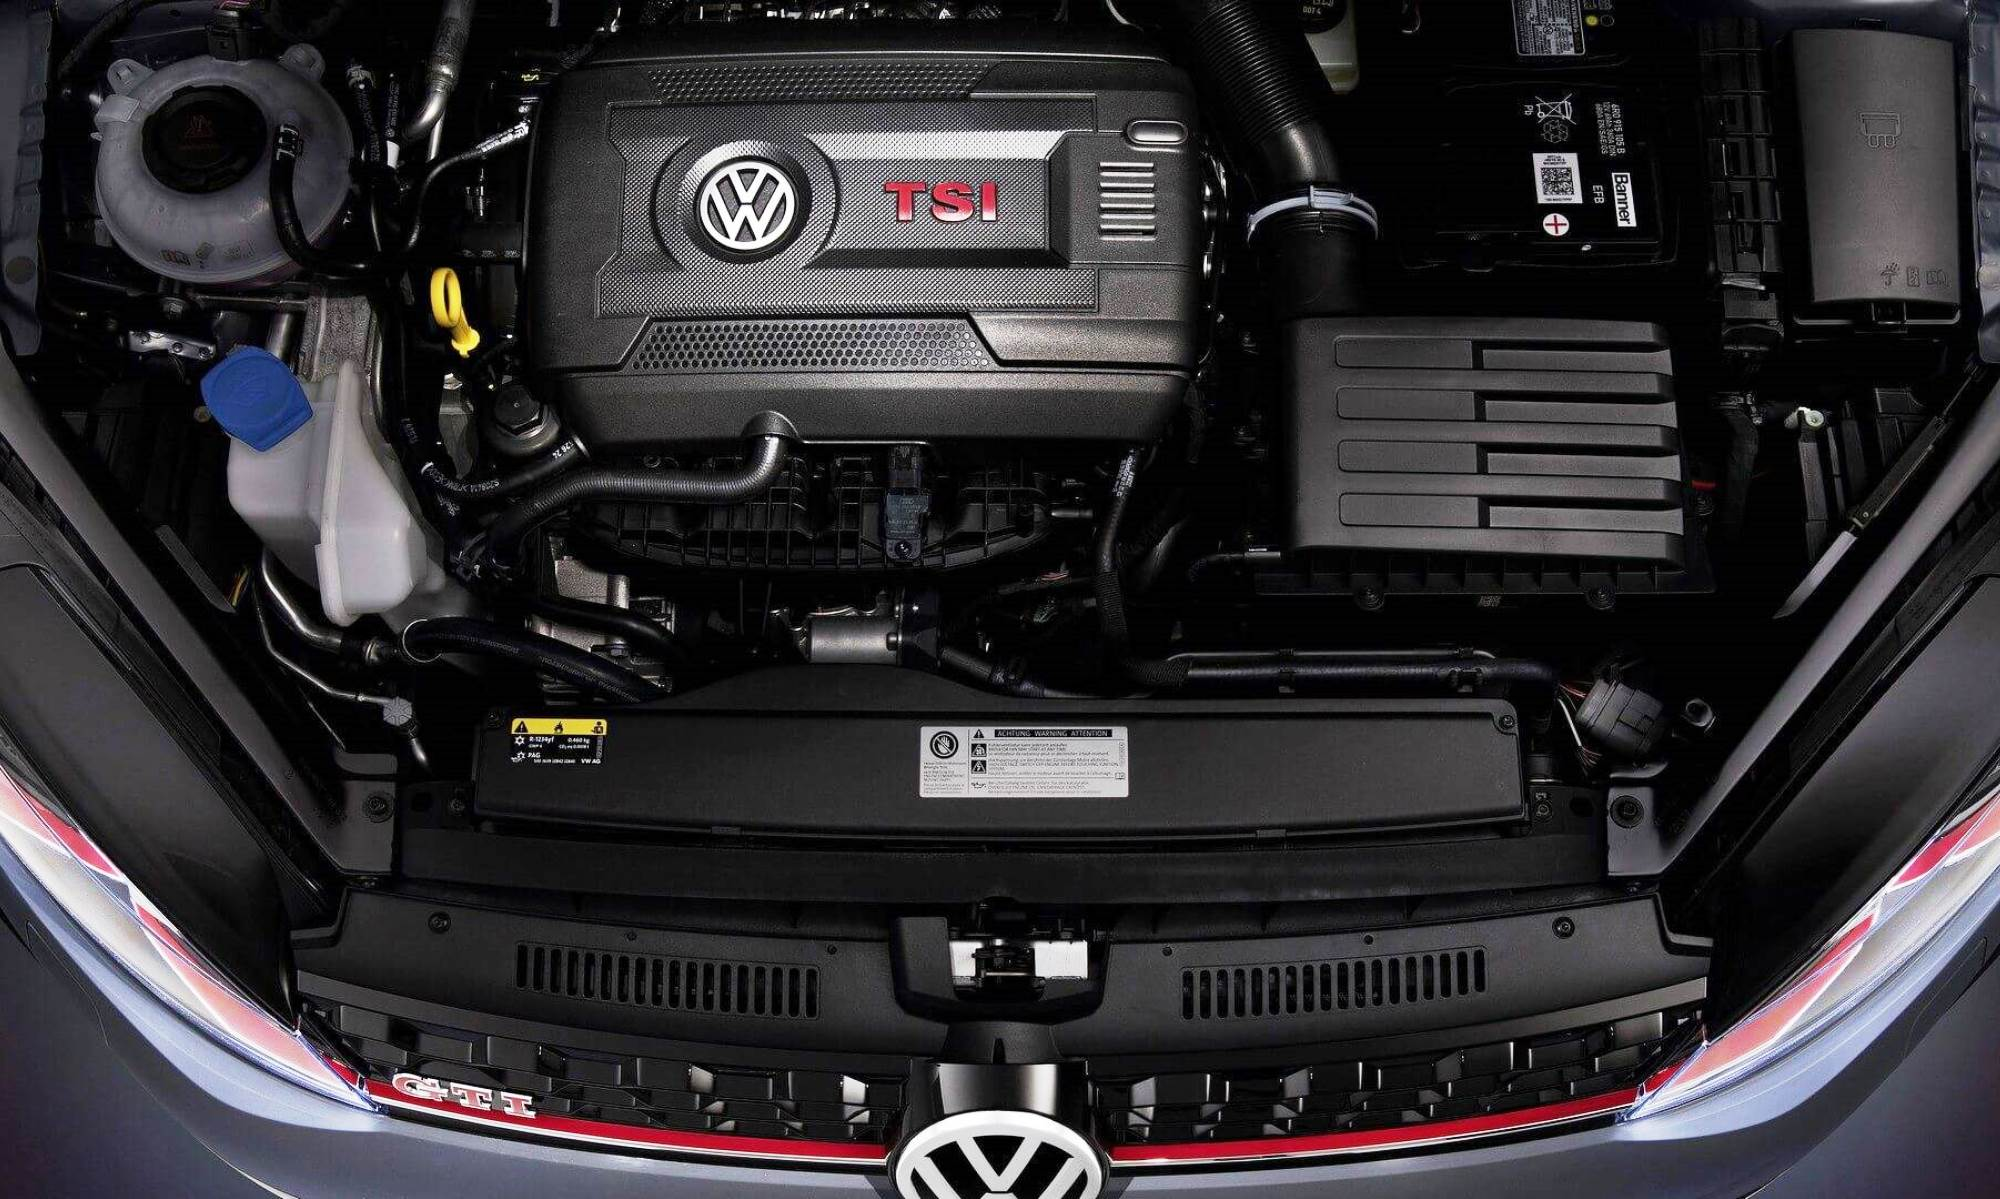 VW Golf GTI TCR engine